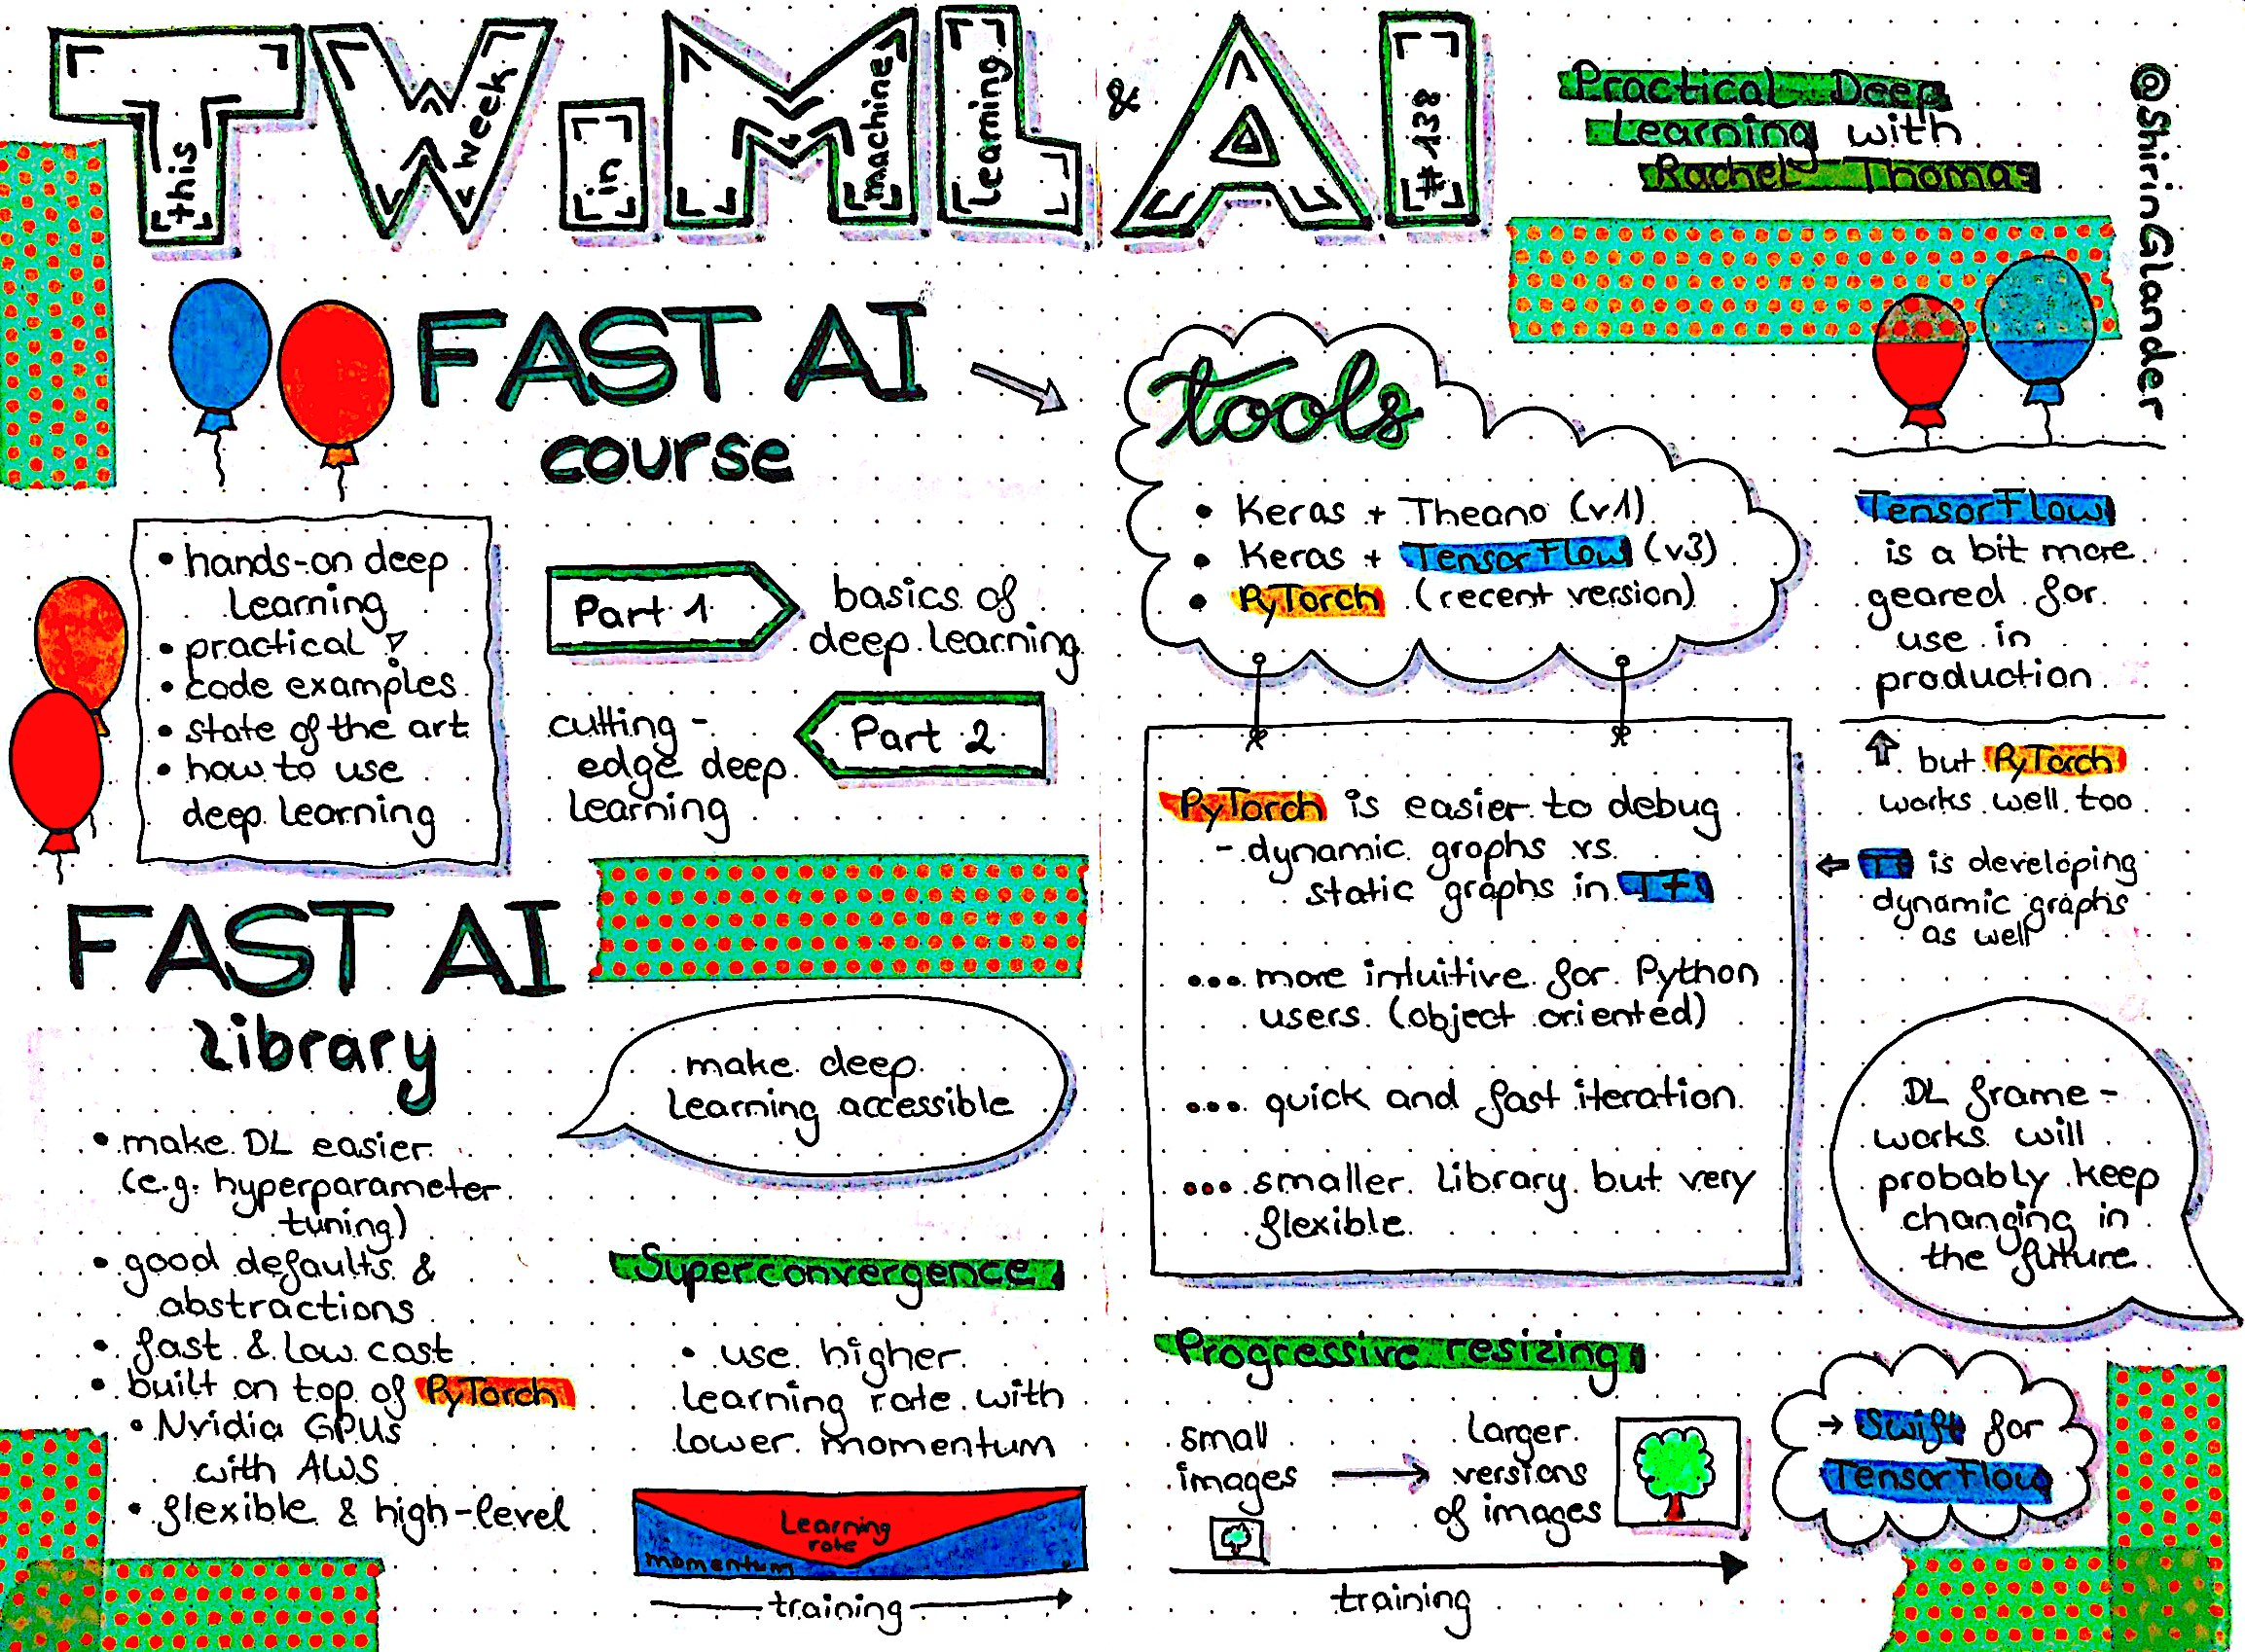 Sketchnotes from TWiML&AI: Practical Deep Learning with Rachel Thomas